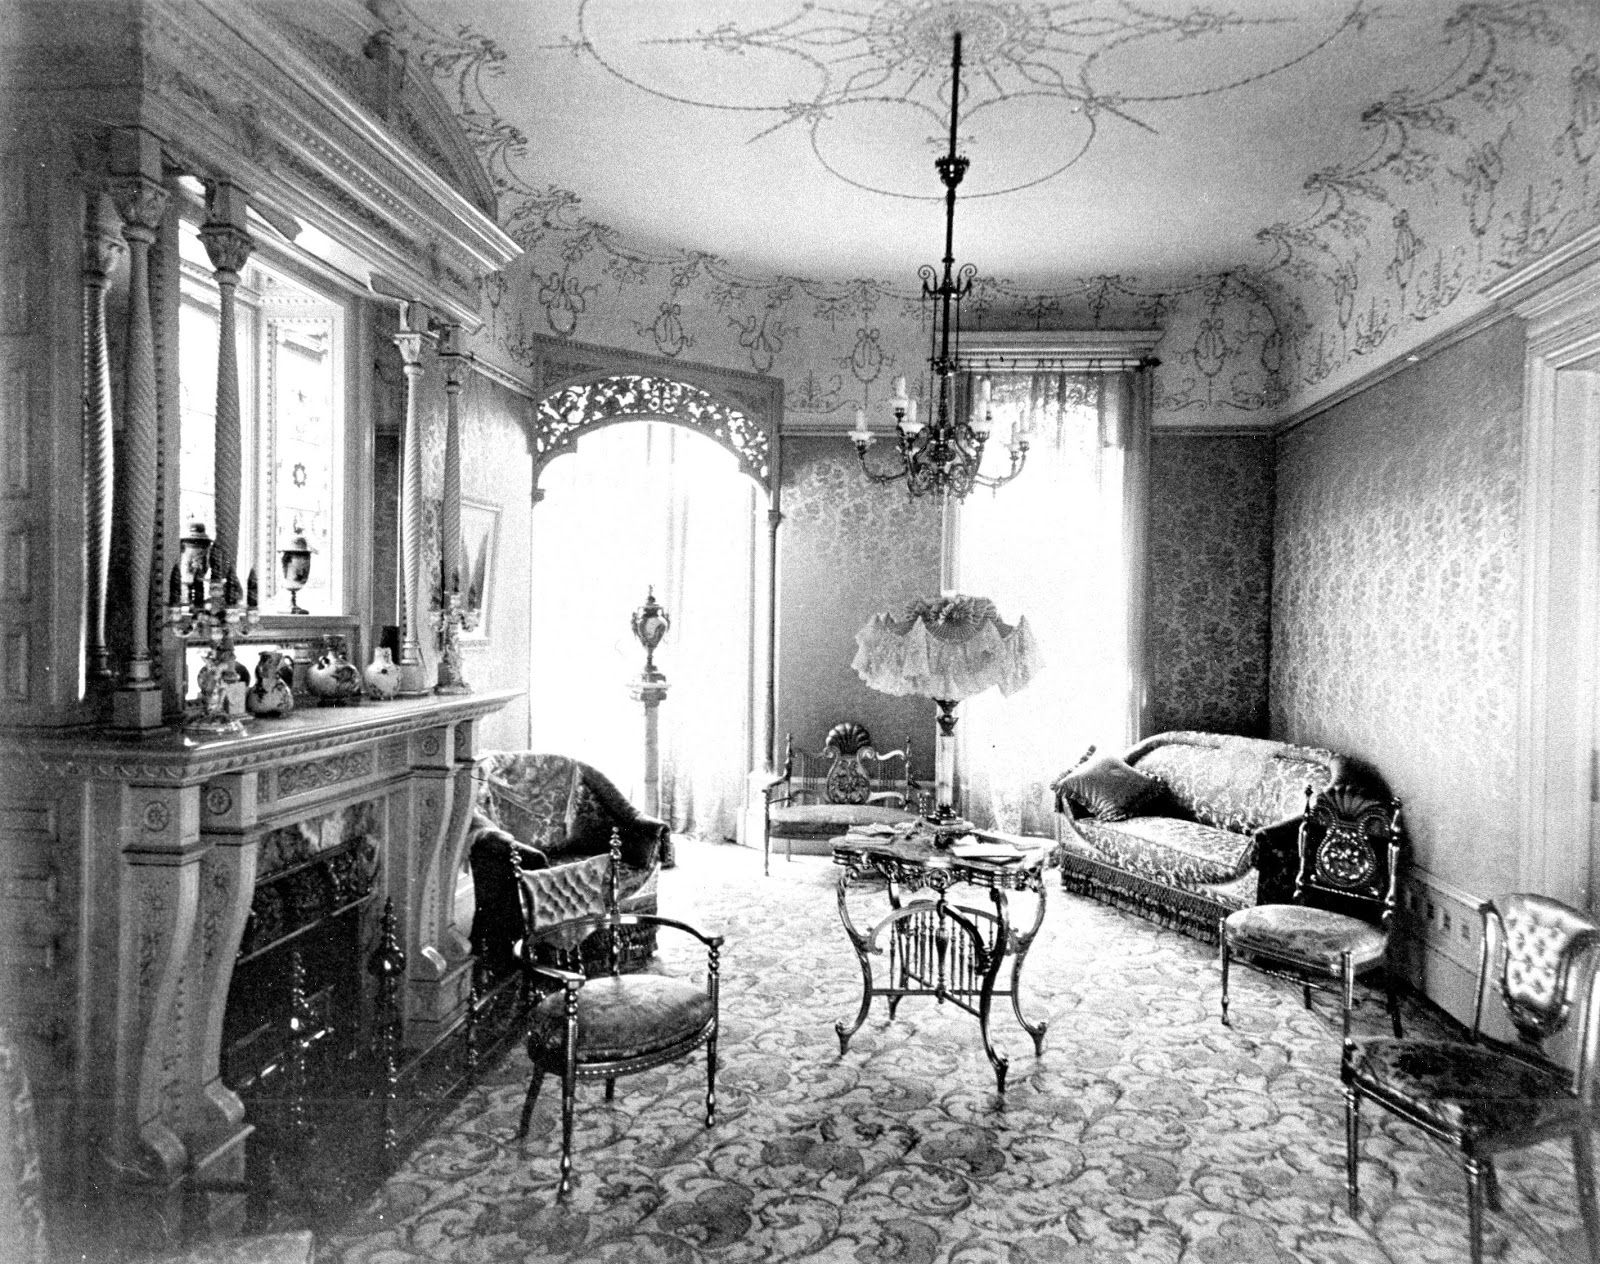 1890s house interiors house cortland new york photograph 1890 1900 the 1890 house. Black Bedroom Furniture Sets. Home Design Ideas